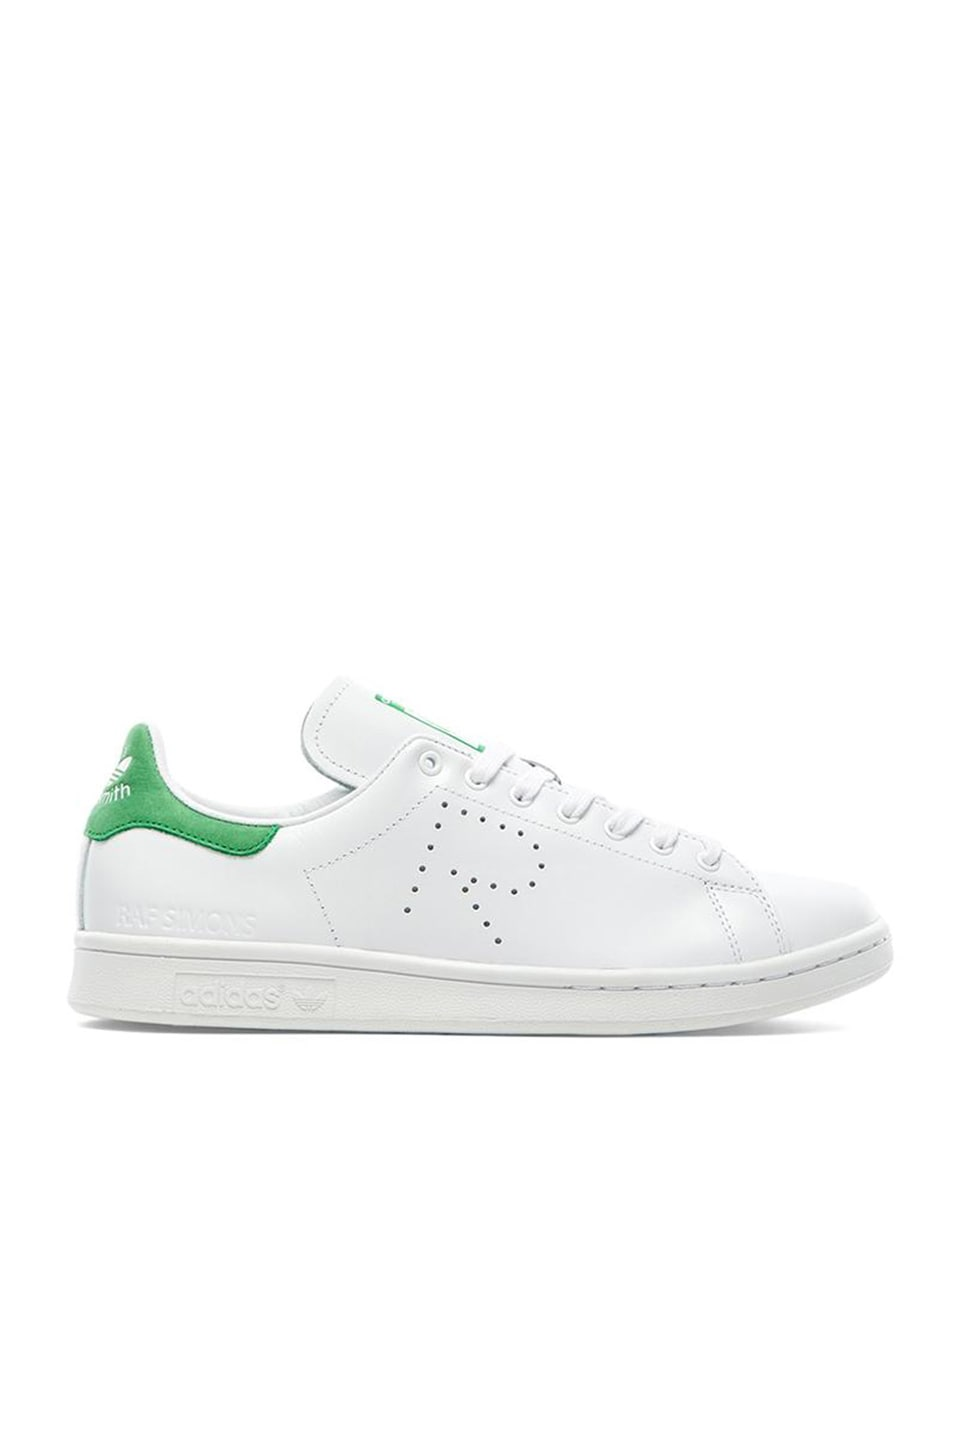 adidas by Raf Simons Stan Smith en White Green